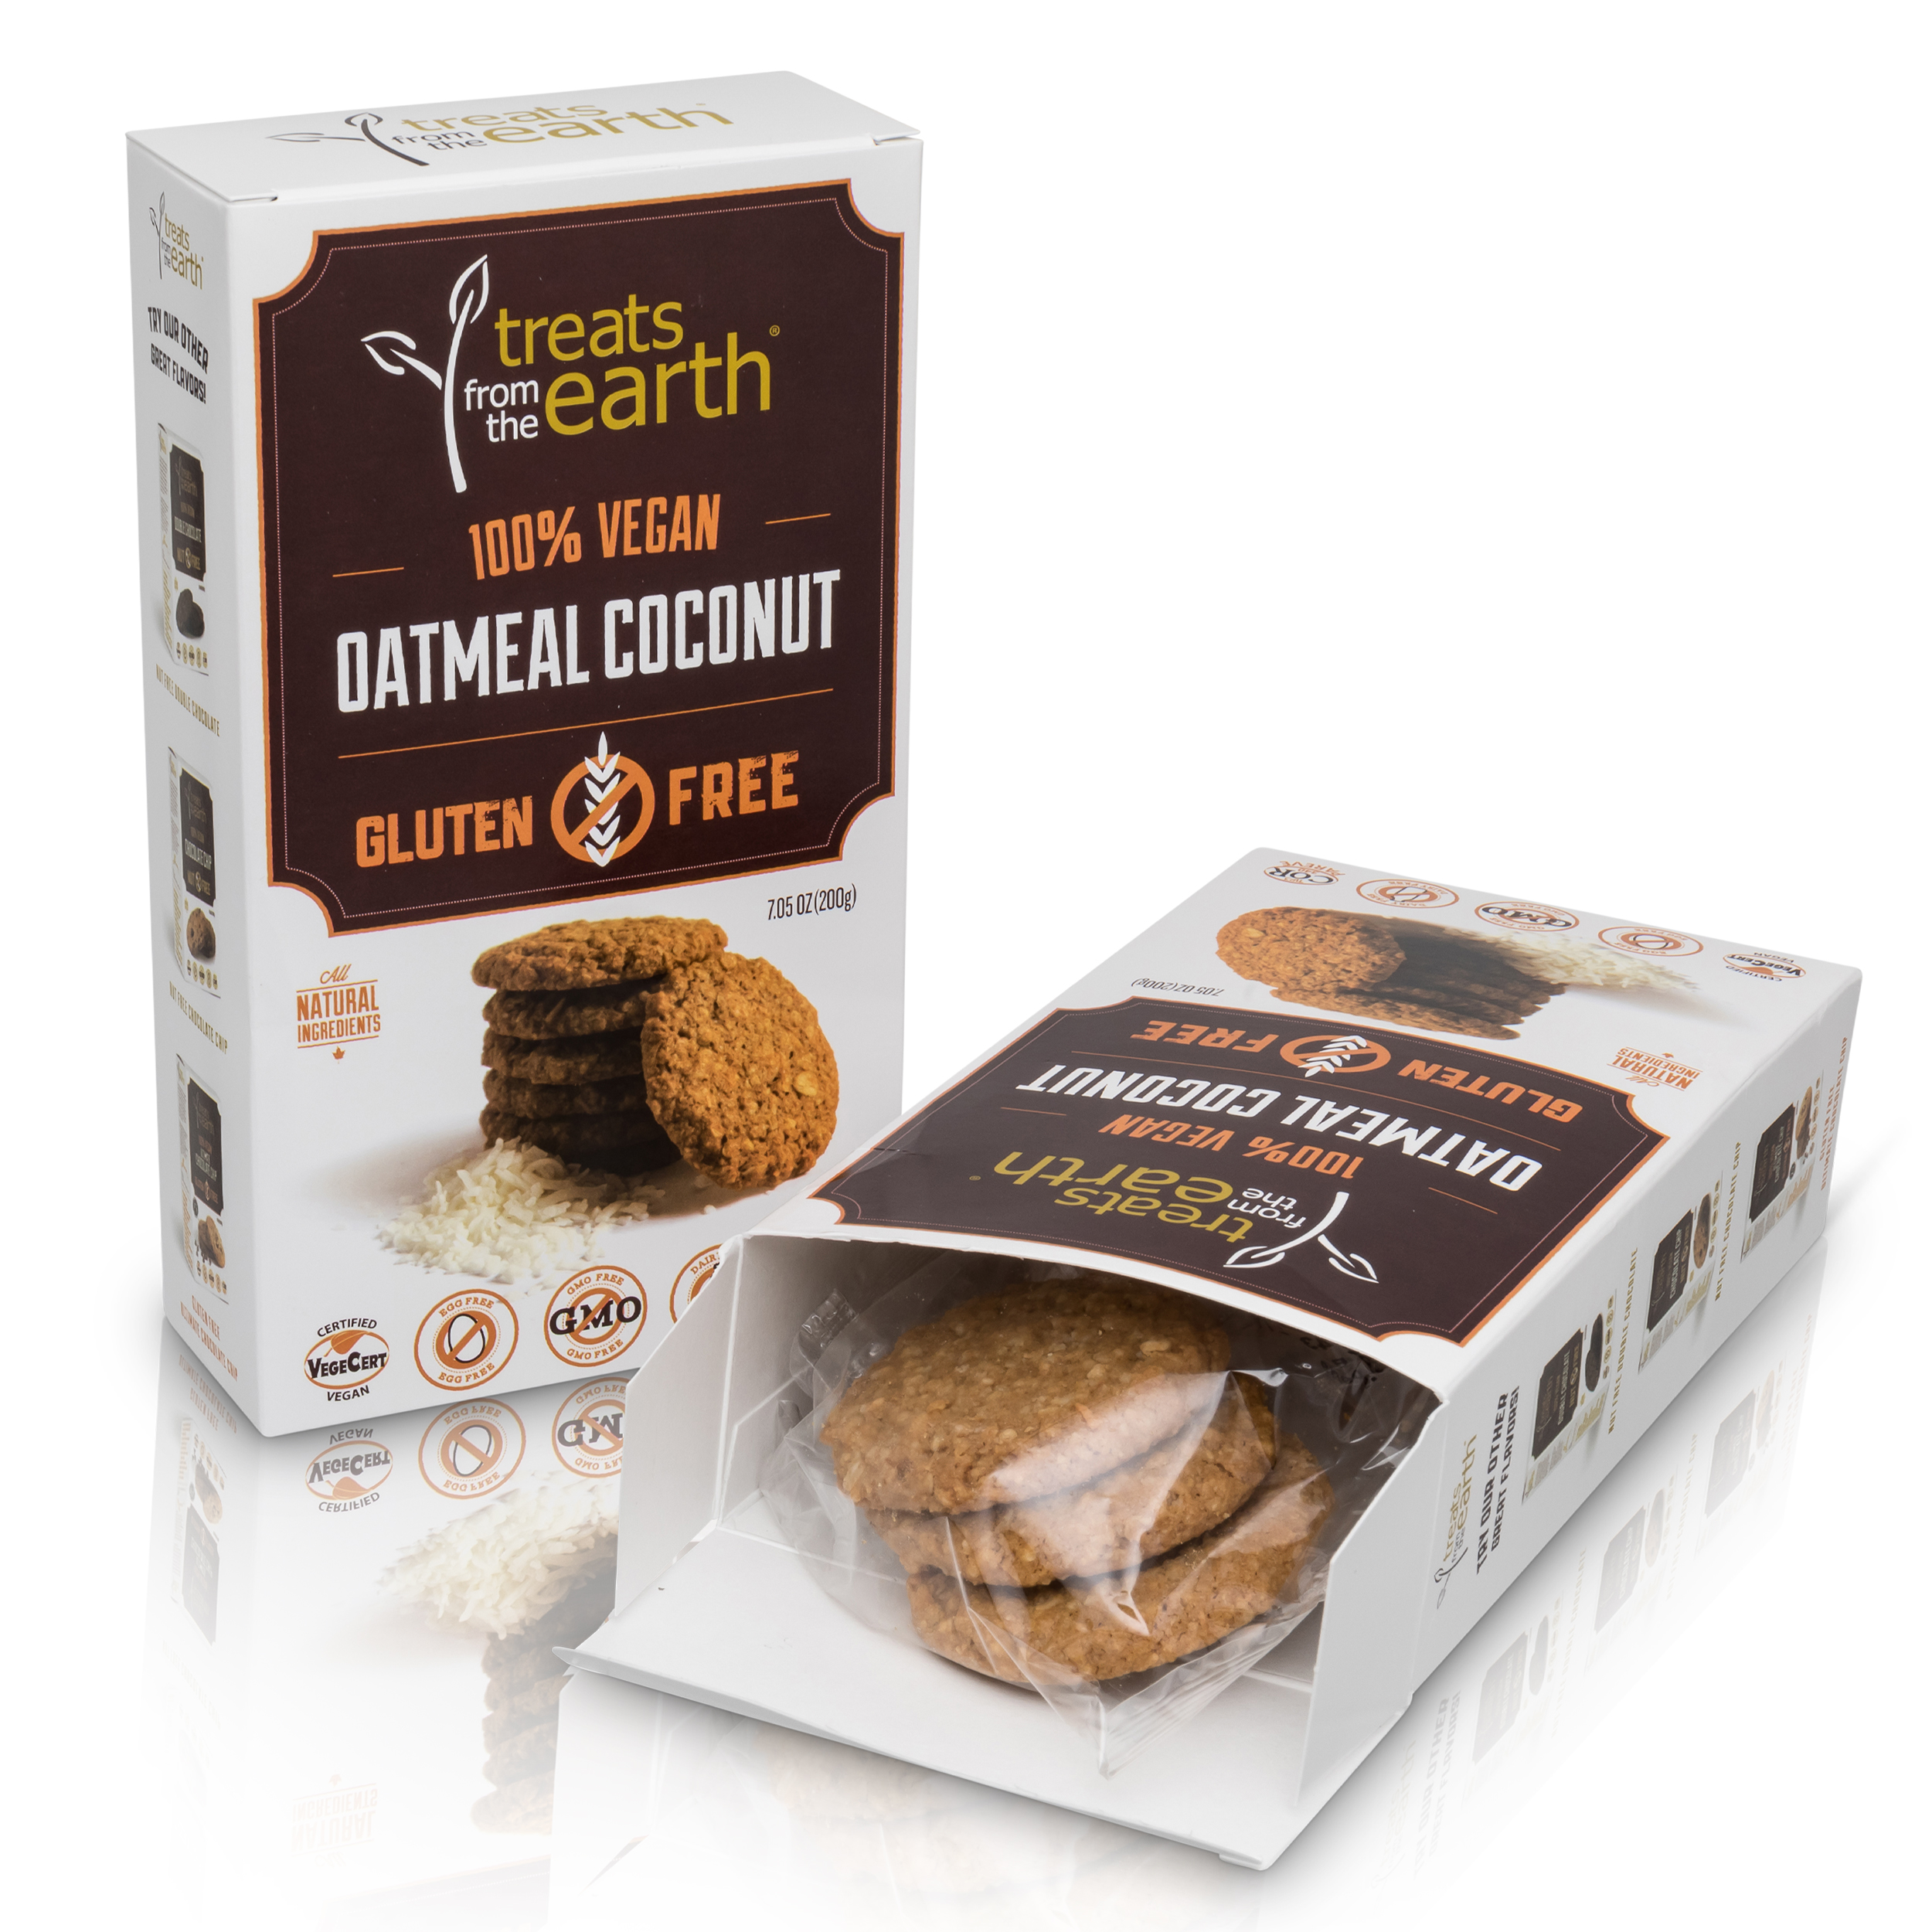 834633000935 - TFTE Gluten Free Oatmeal Coconut Cookie Box 200g